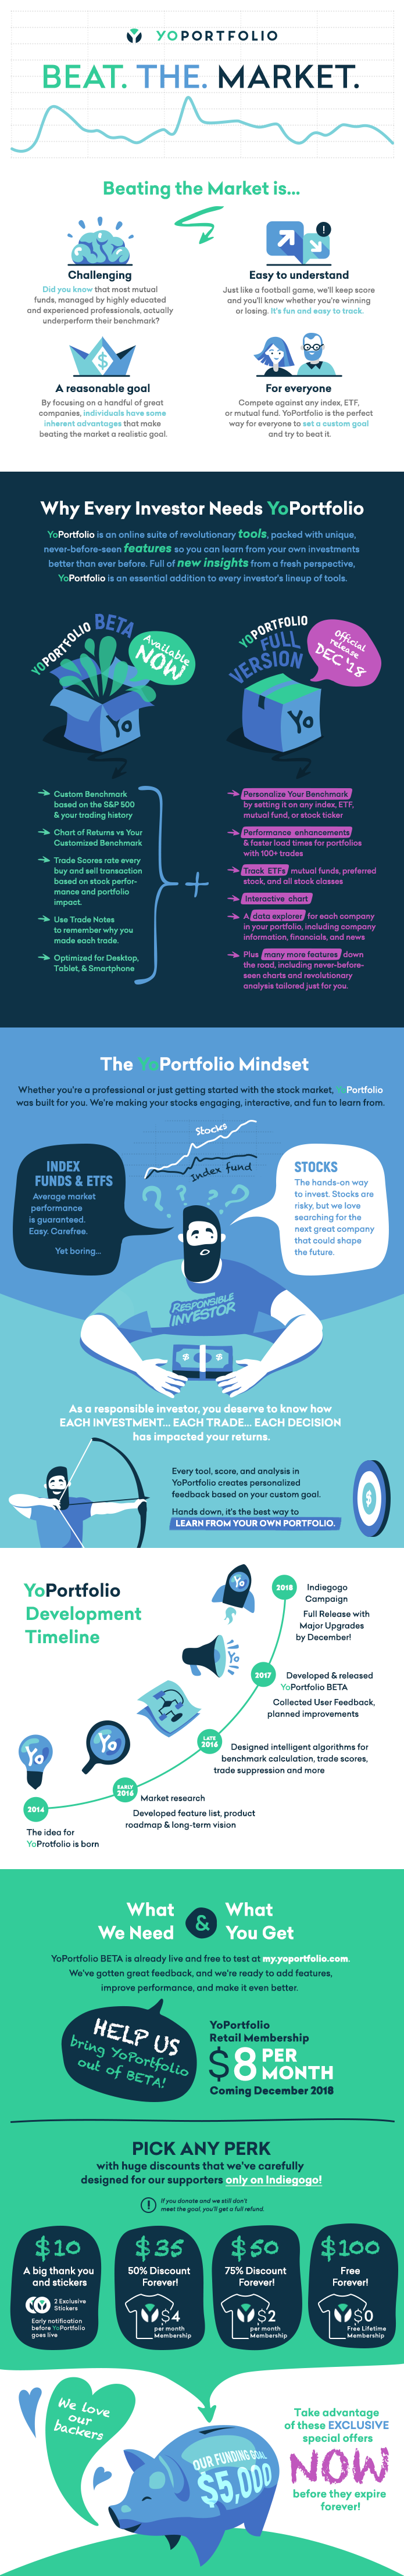 Infographic - for my startup called YoPortfolio